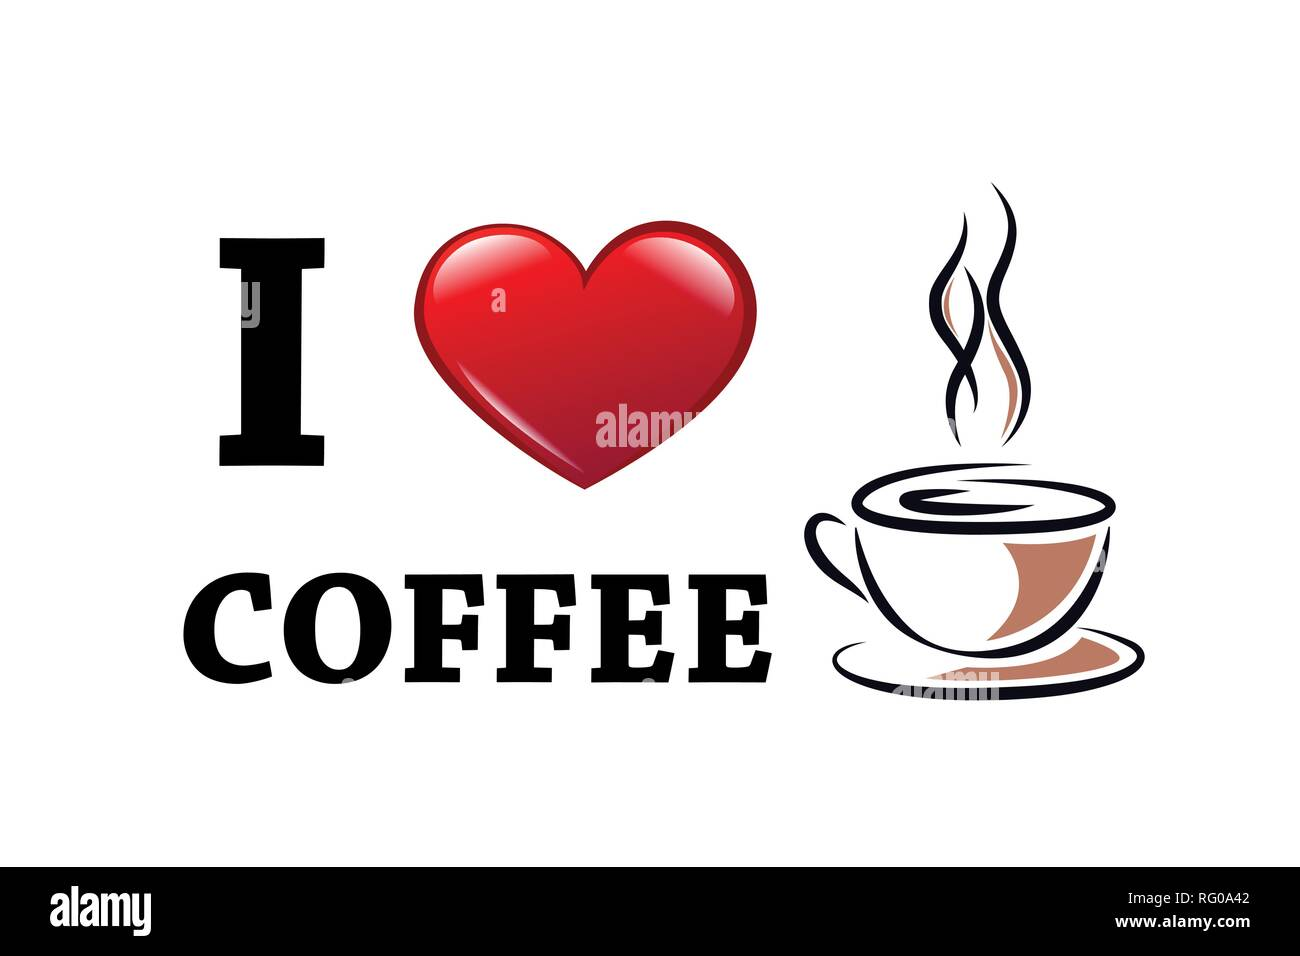 I love coffee typography with red heart and coffee cup vector illustration EPS10 - Stock Vector